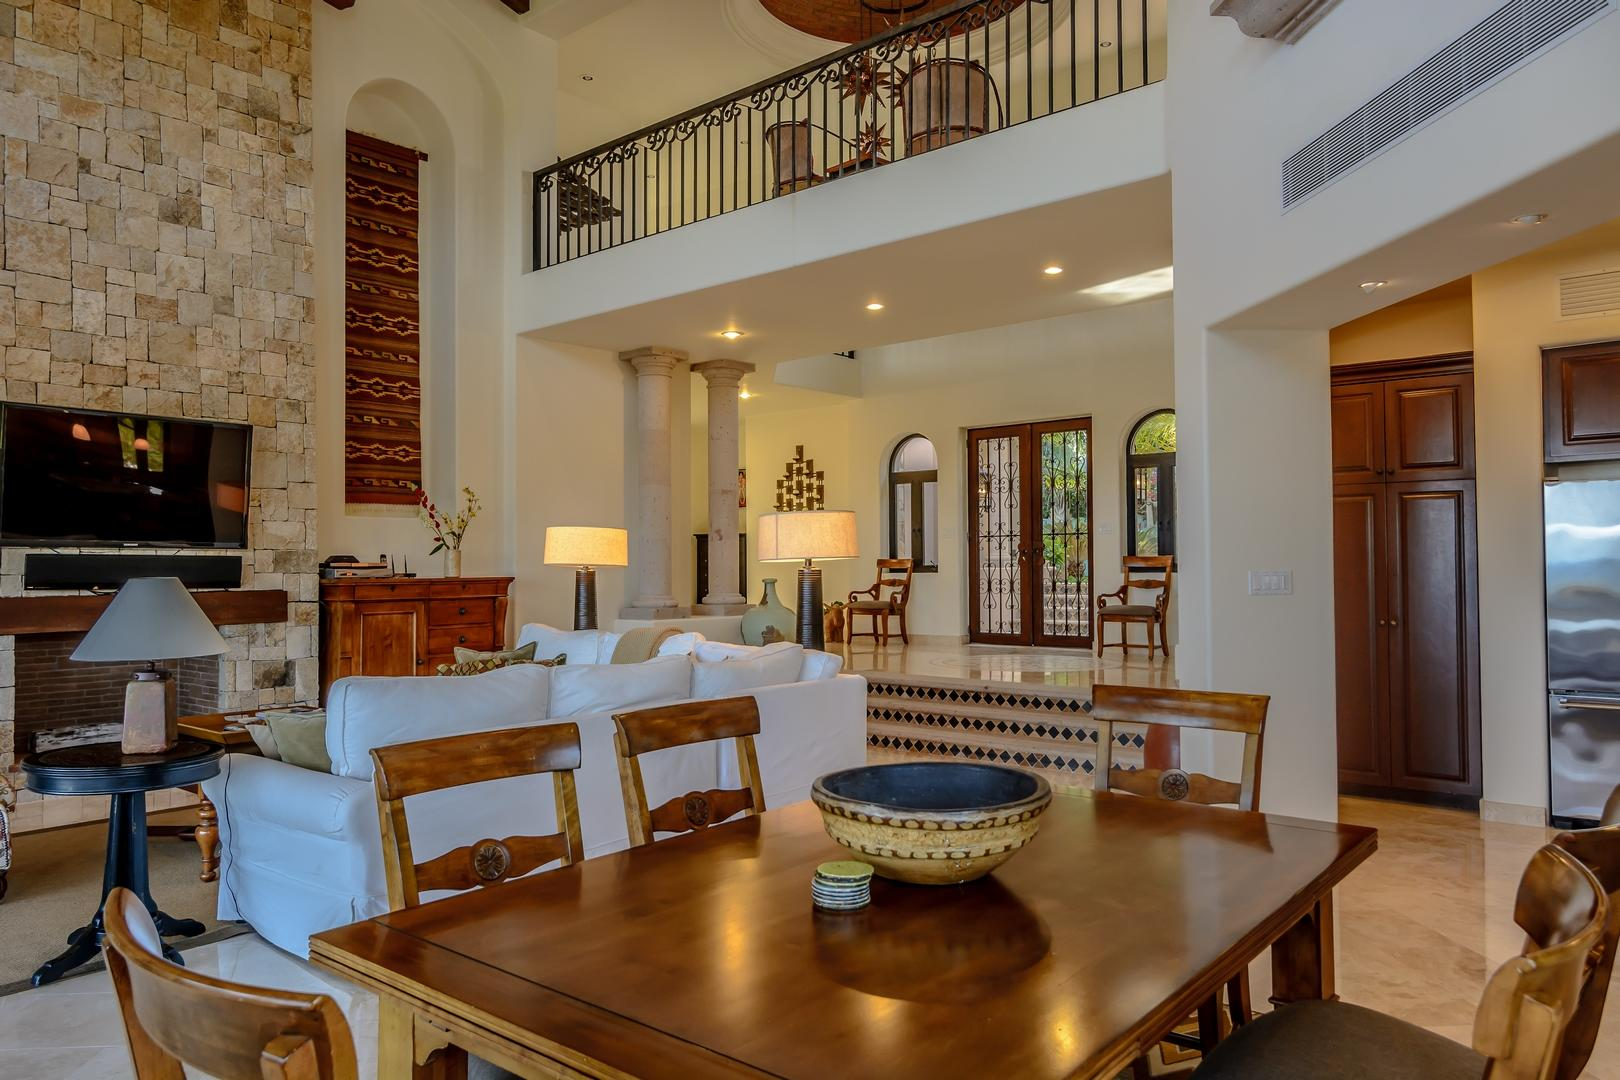 San Jose del Cabo, 5 Bedrooms Bedrooms, ,5 BathroomsBathrooms,House,For Sale,Calle Mision San Diego,18-114